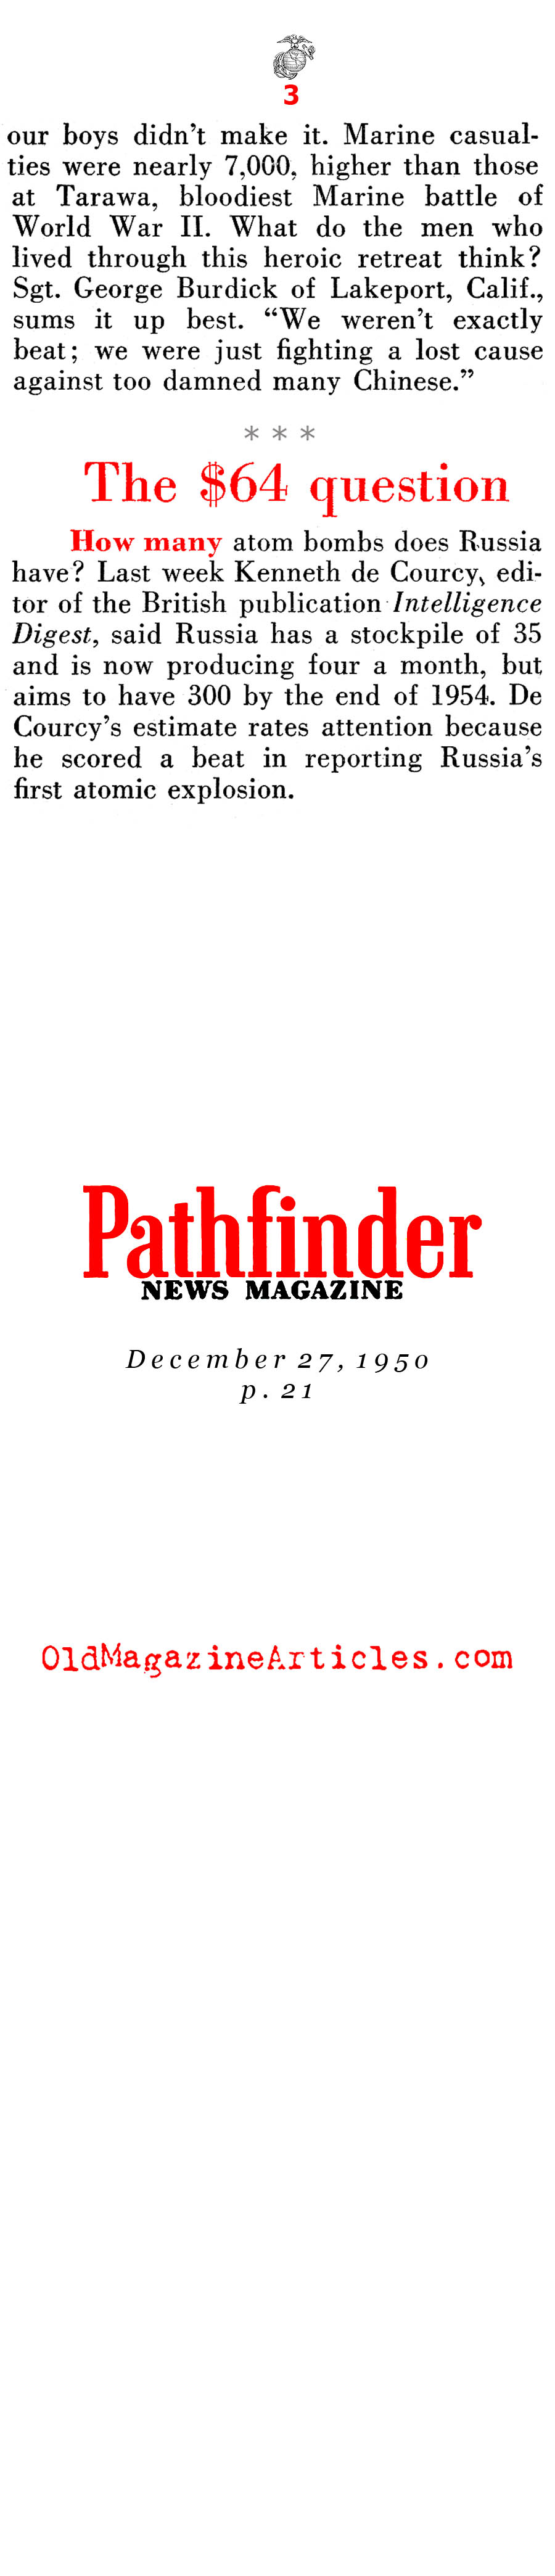 The March from Chosin to the Sea (Pathfinder Magazine, 1950)